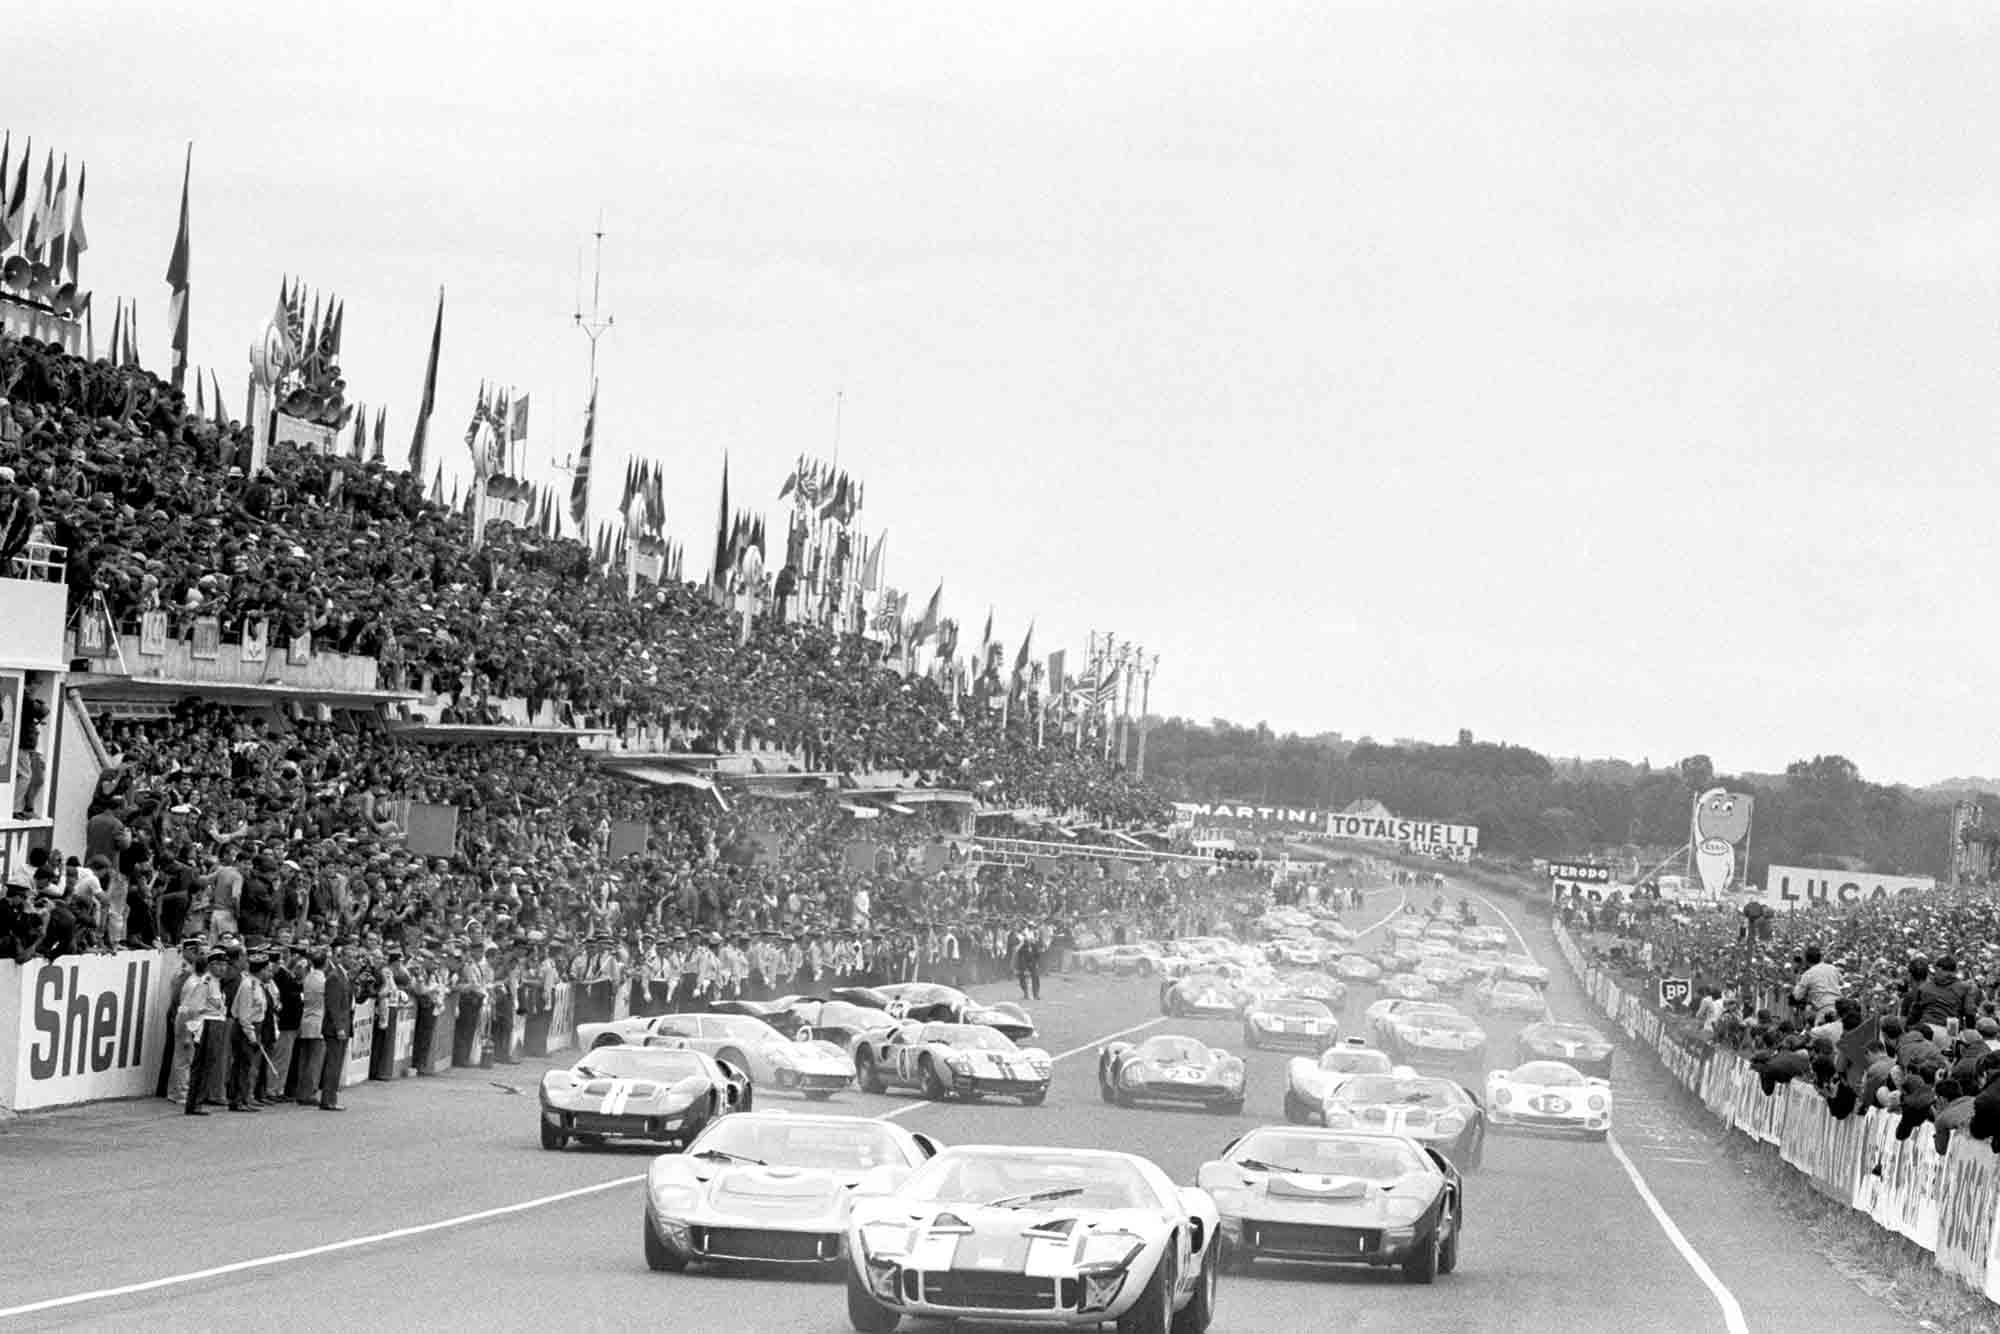 Peter Revson / Skip Scott, Essex Wire Corporation, Ford GT40, leads Ronnie Bucknum / Richard Hutcherson, Holman & Moody, Ford GT40 Mk II, Mark Donohue / Paul Hawkins, Holman & Moody, Ford GT40 Mk II, and the rest of the field at the start of 1966 Le Mans.